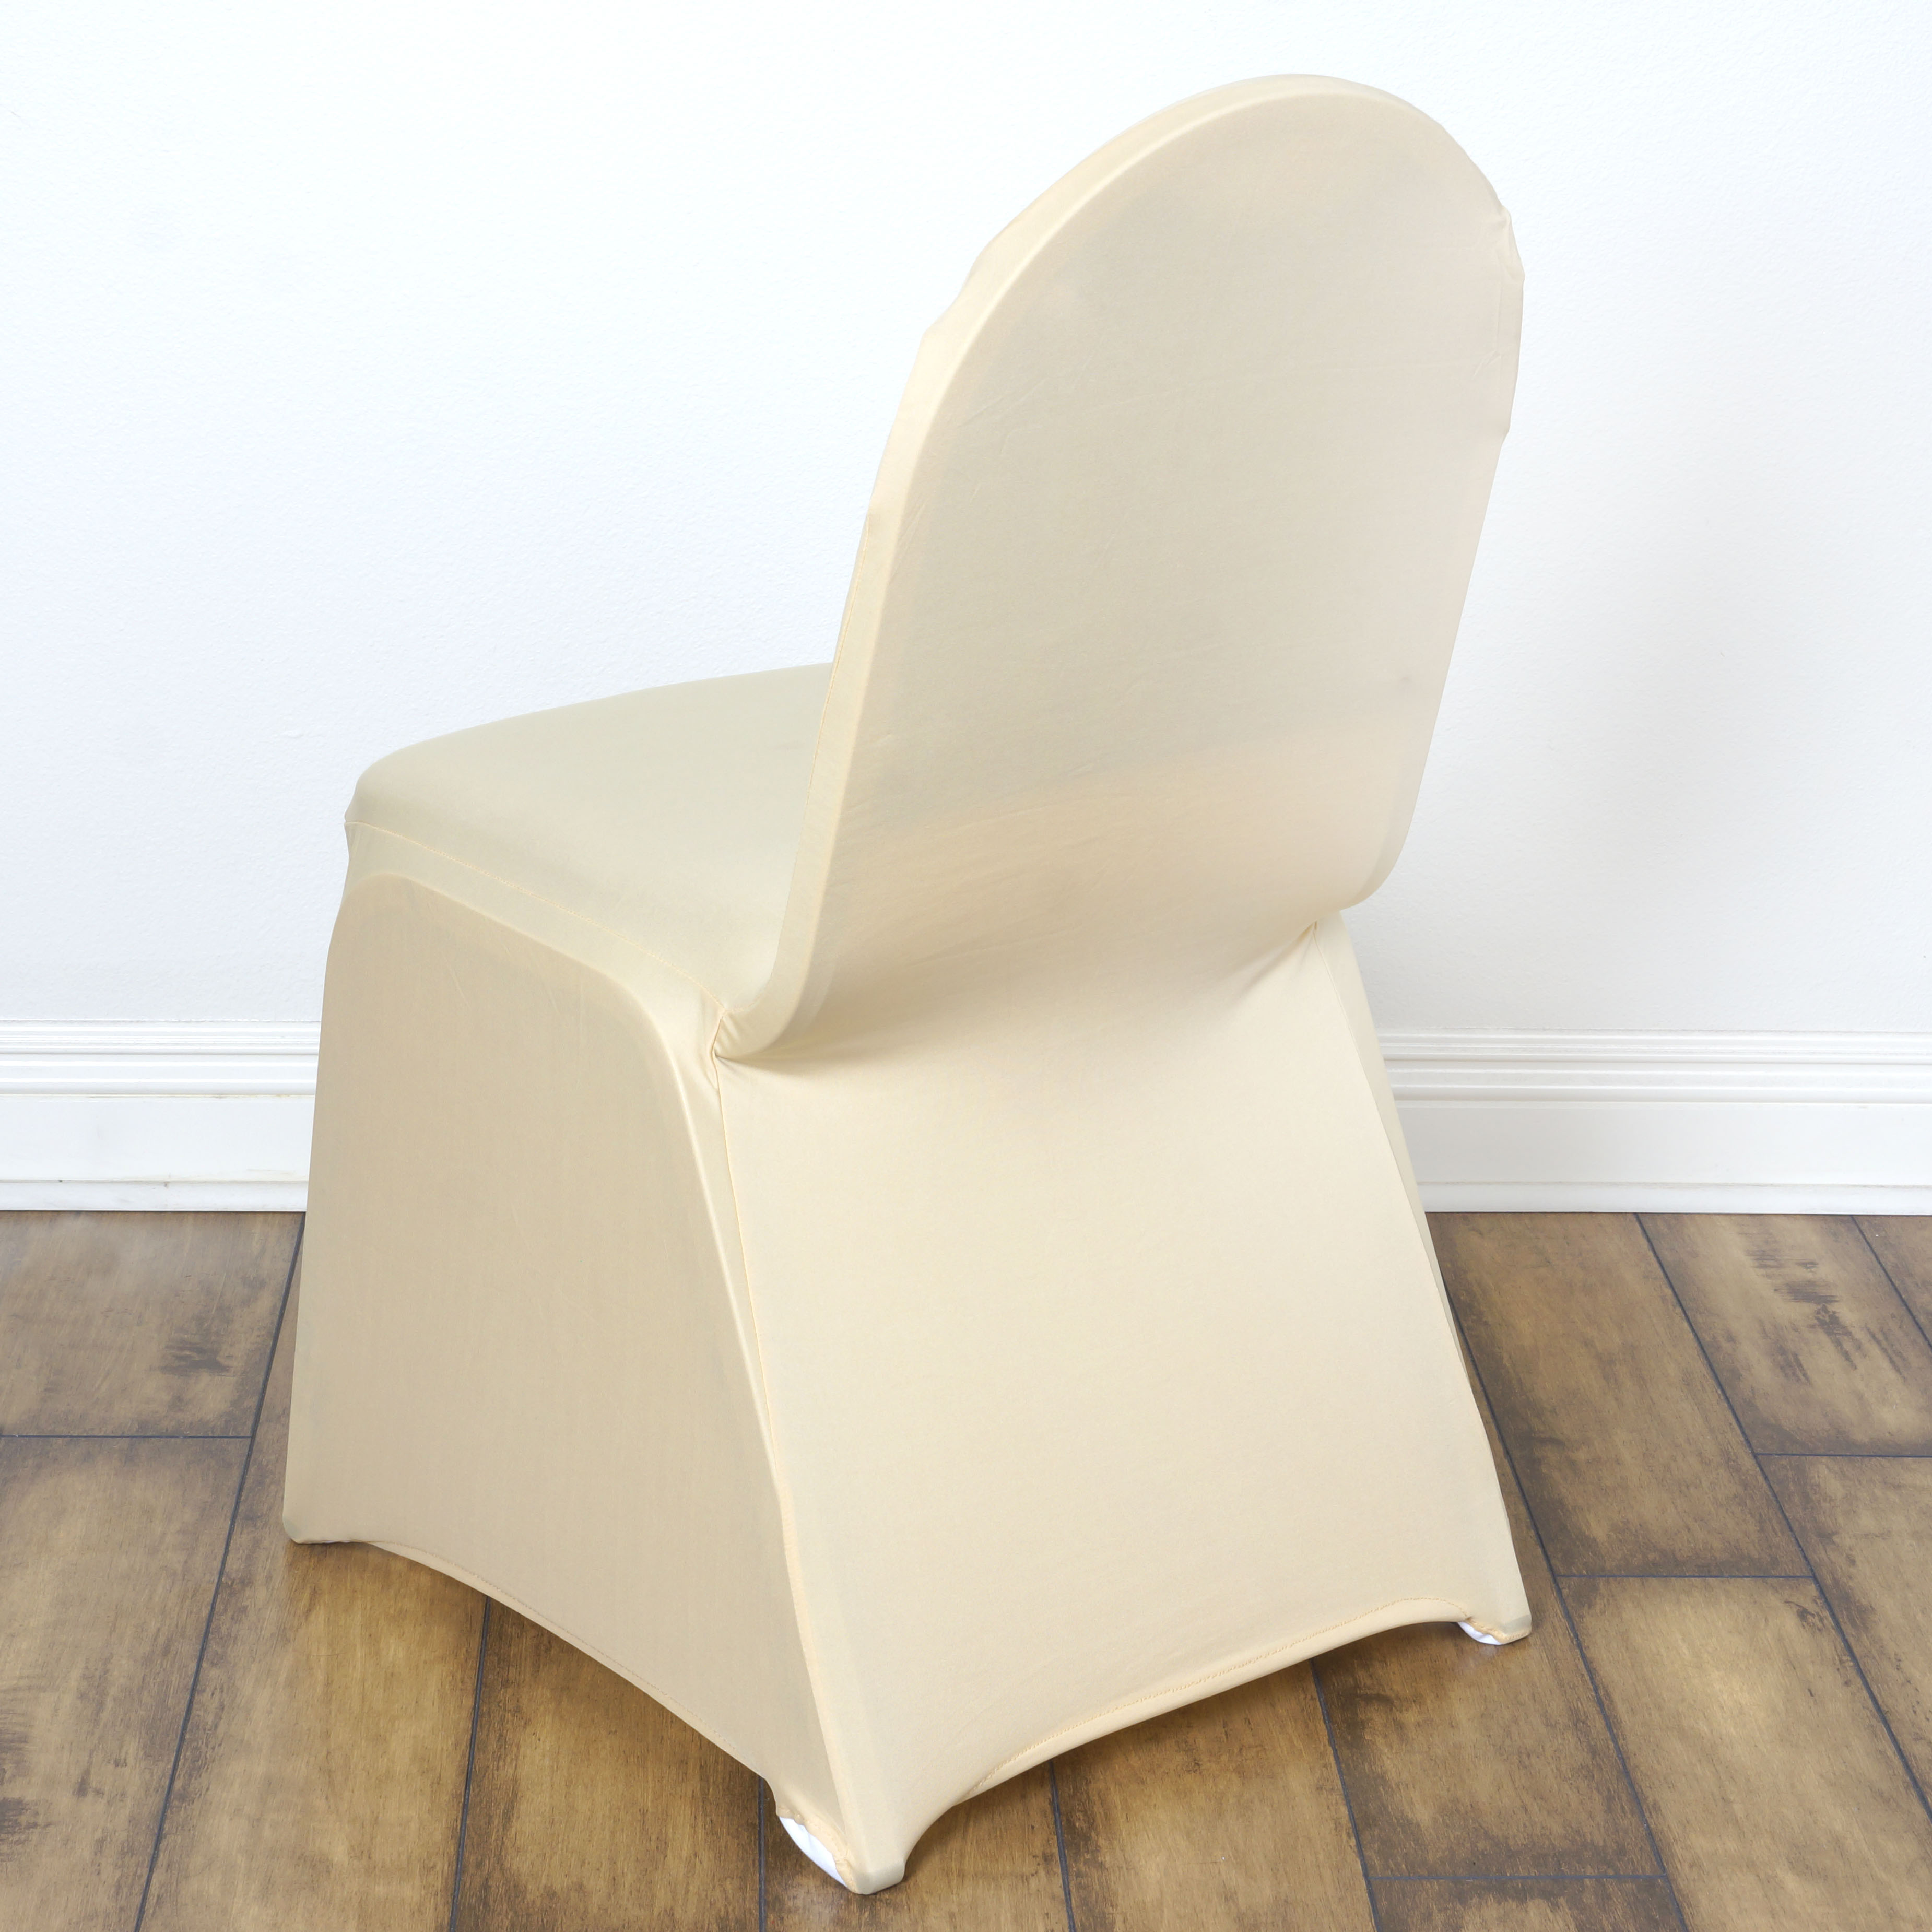 100 Pcs SPANDEX Stretchable High Quality CHAIR COVERS Wholesale Wedding Suppl